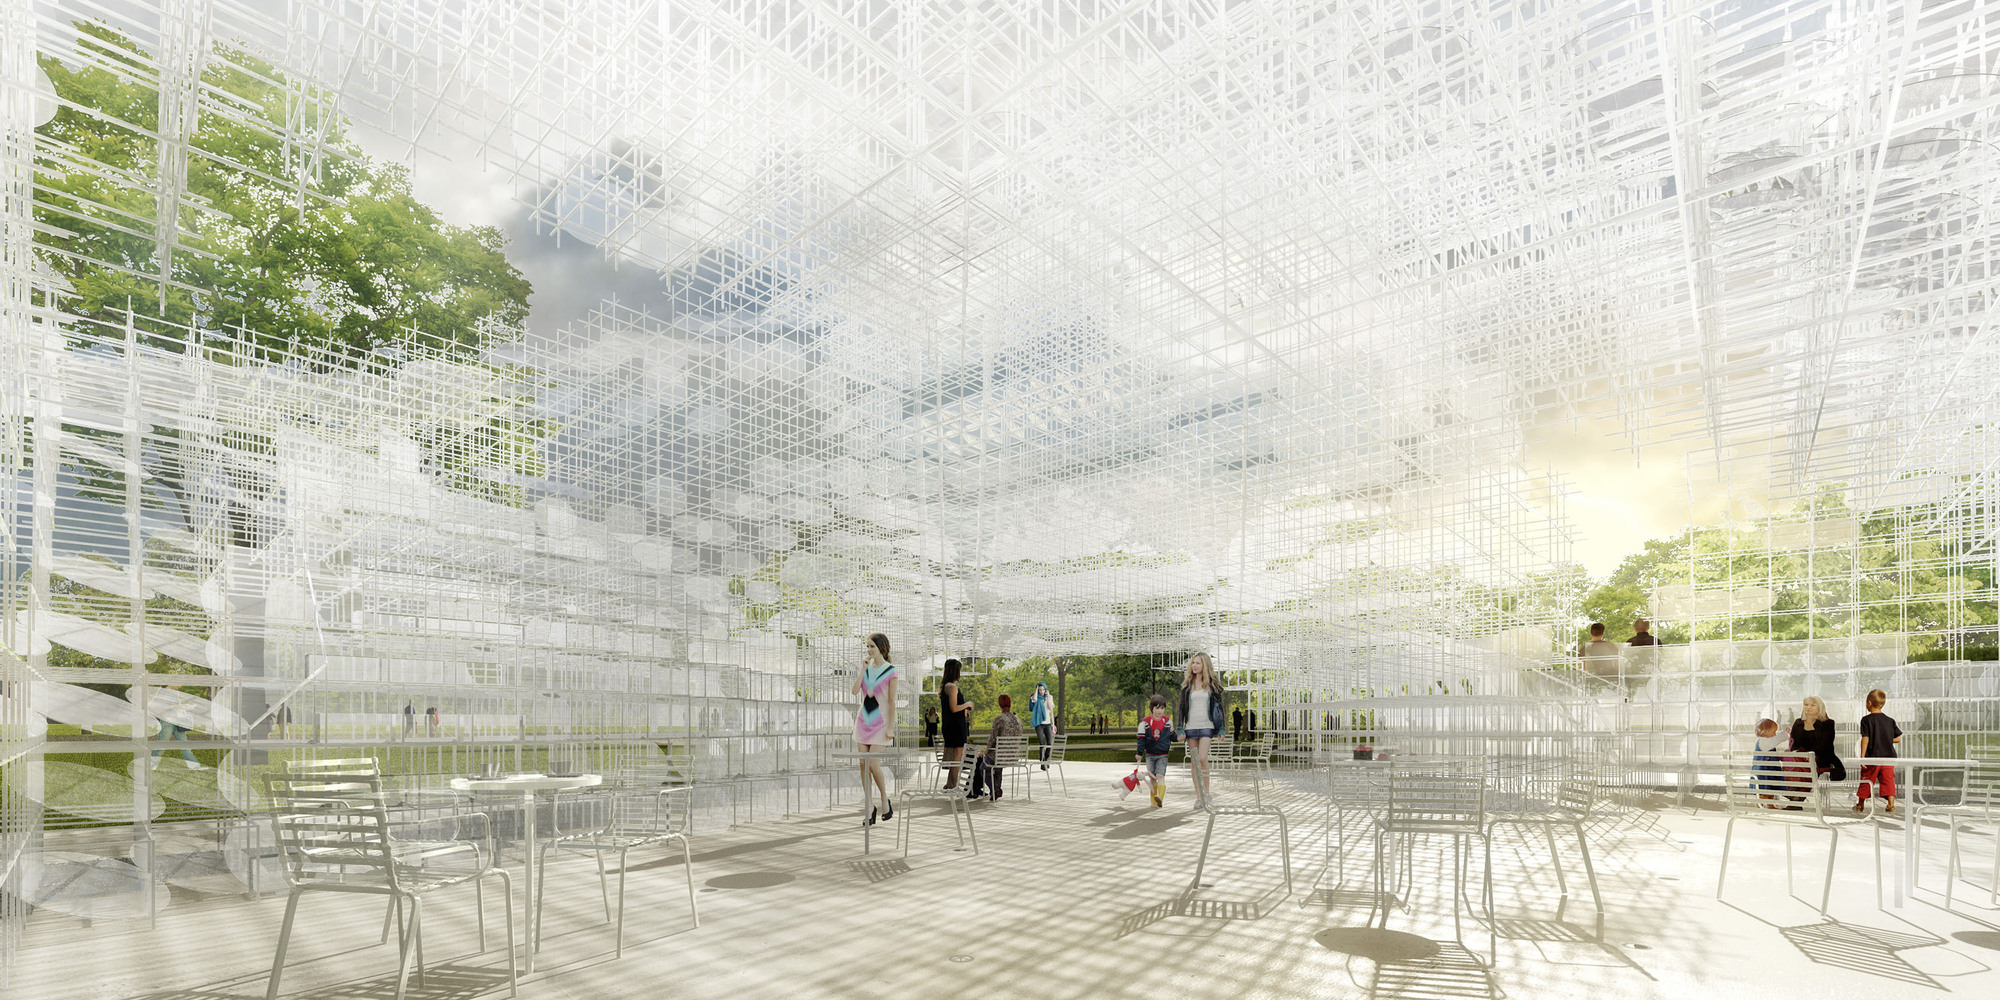 The Serpentine Gallery Pavilion 2013 will be design by Sou Fujimoto